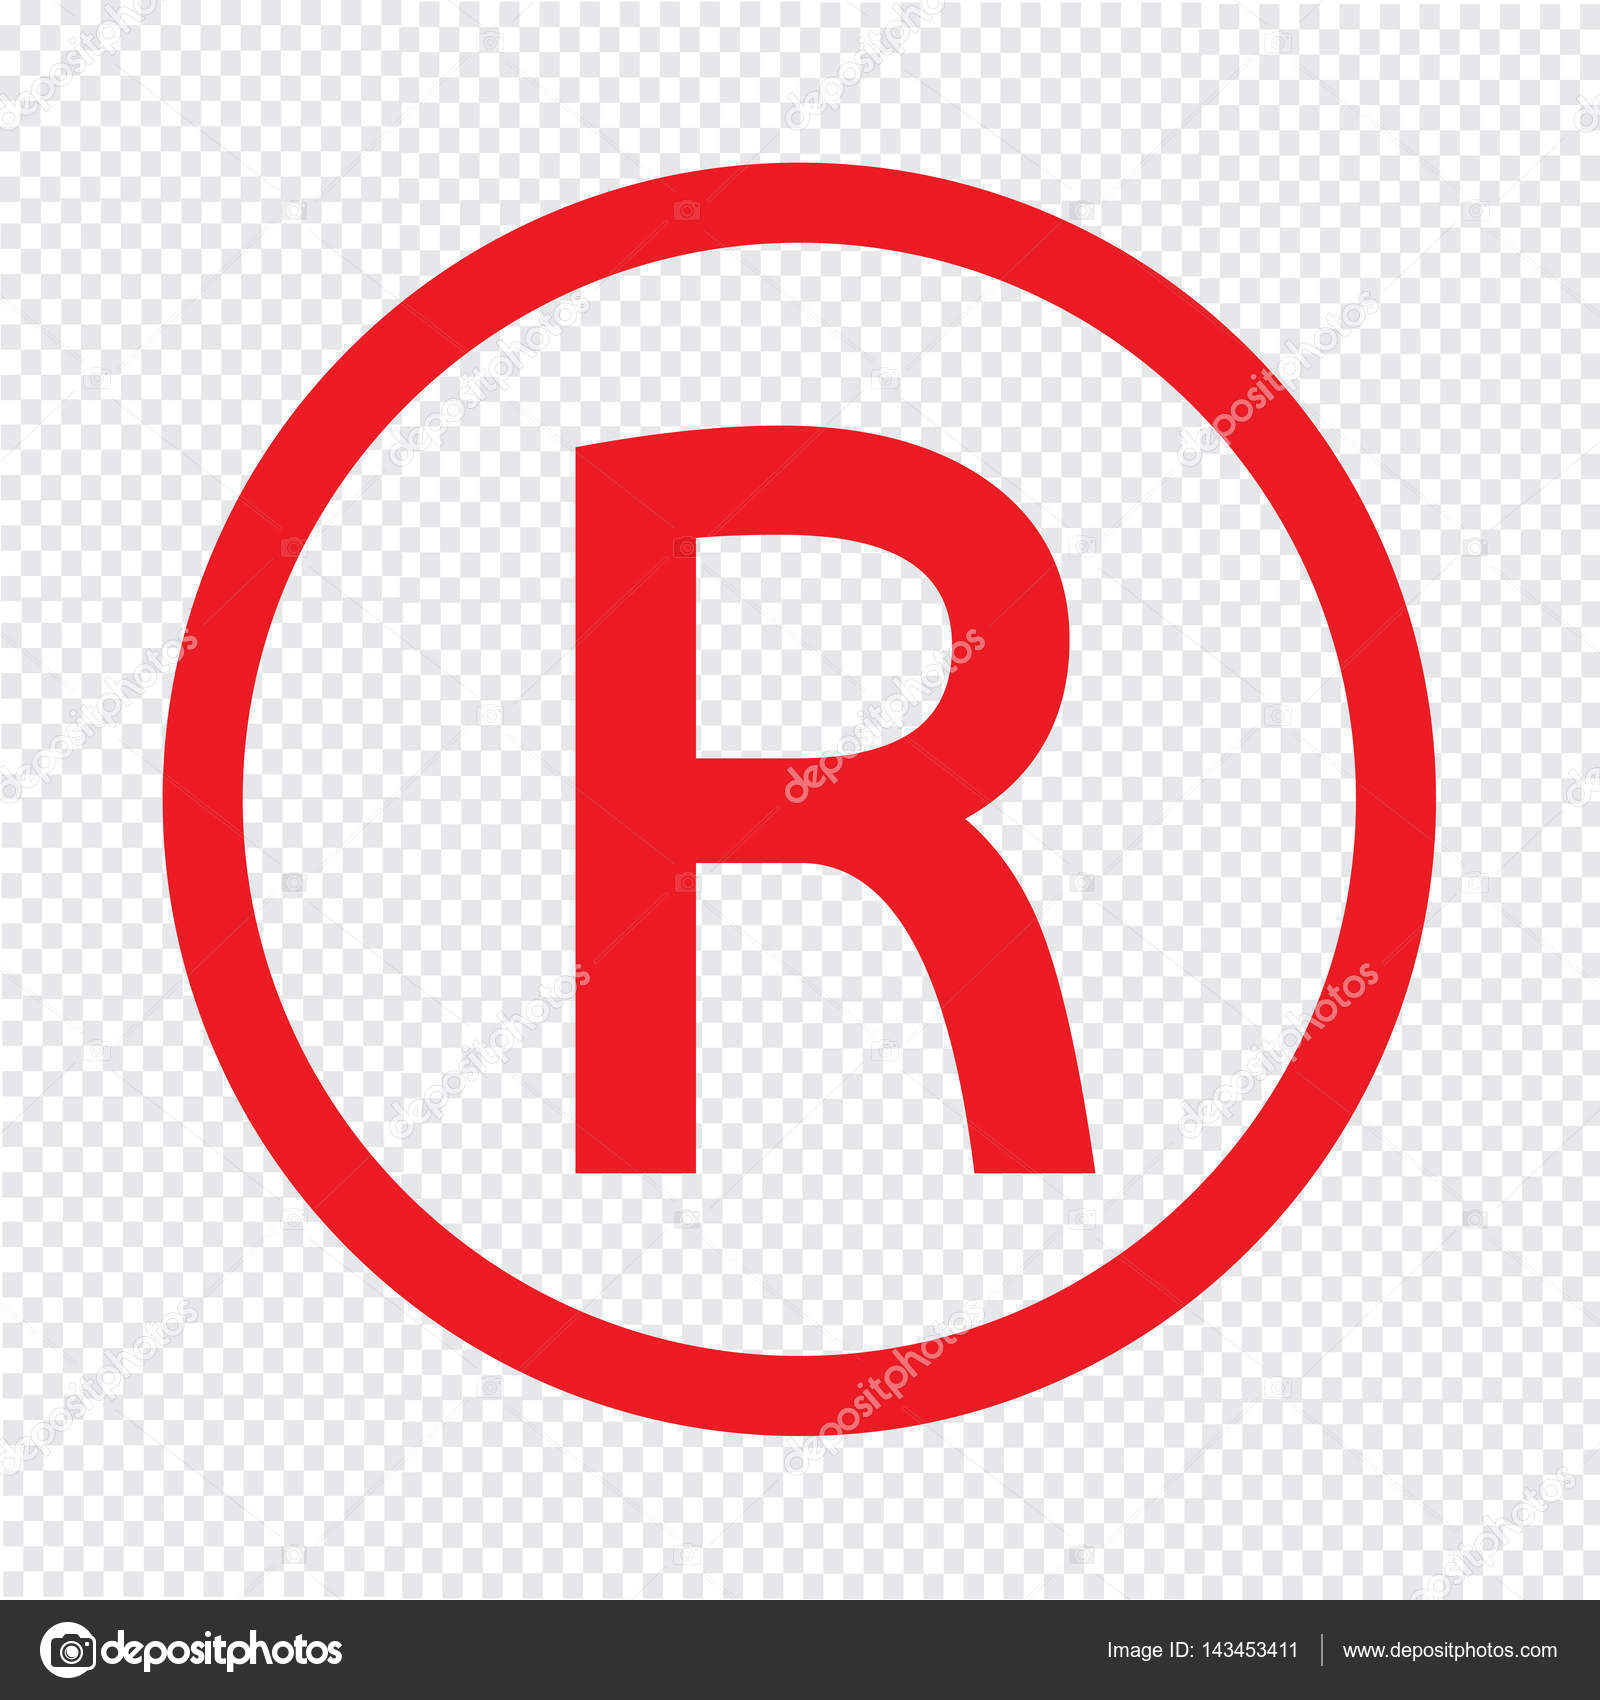 Registered trademark icon stock vector porjai 143453411 registered trademark icon stock vector biocorpaavc Choice Image